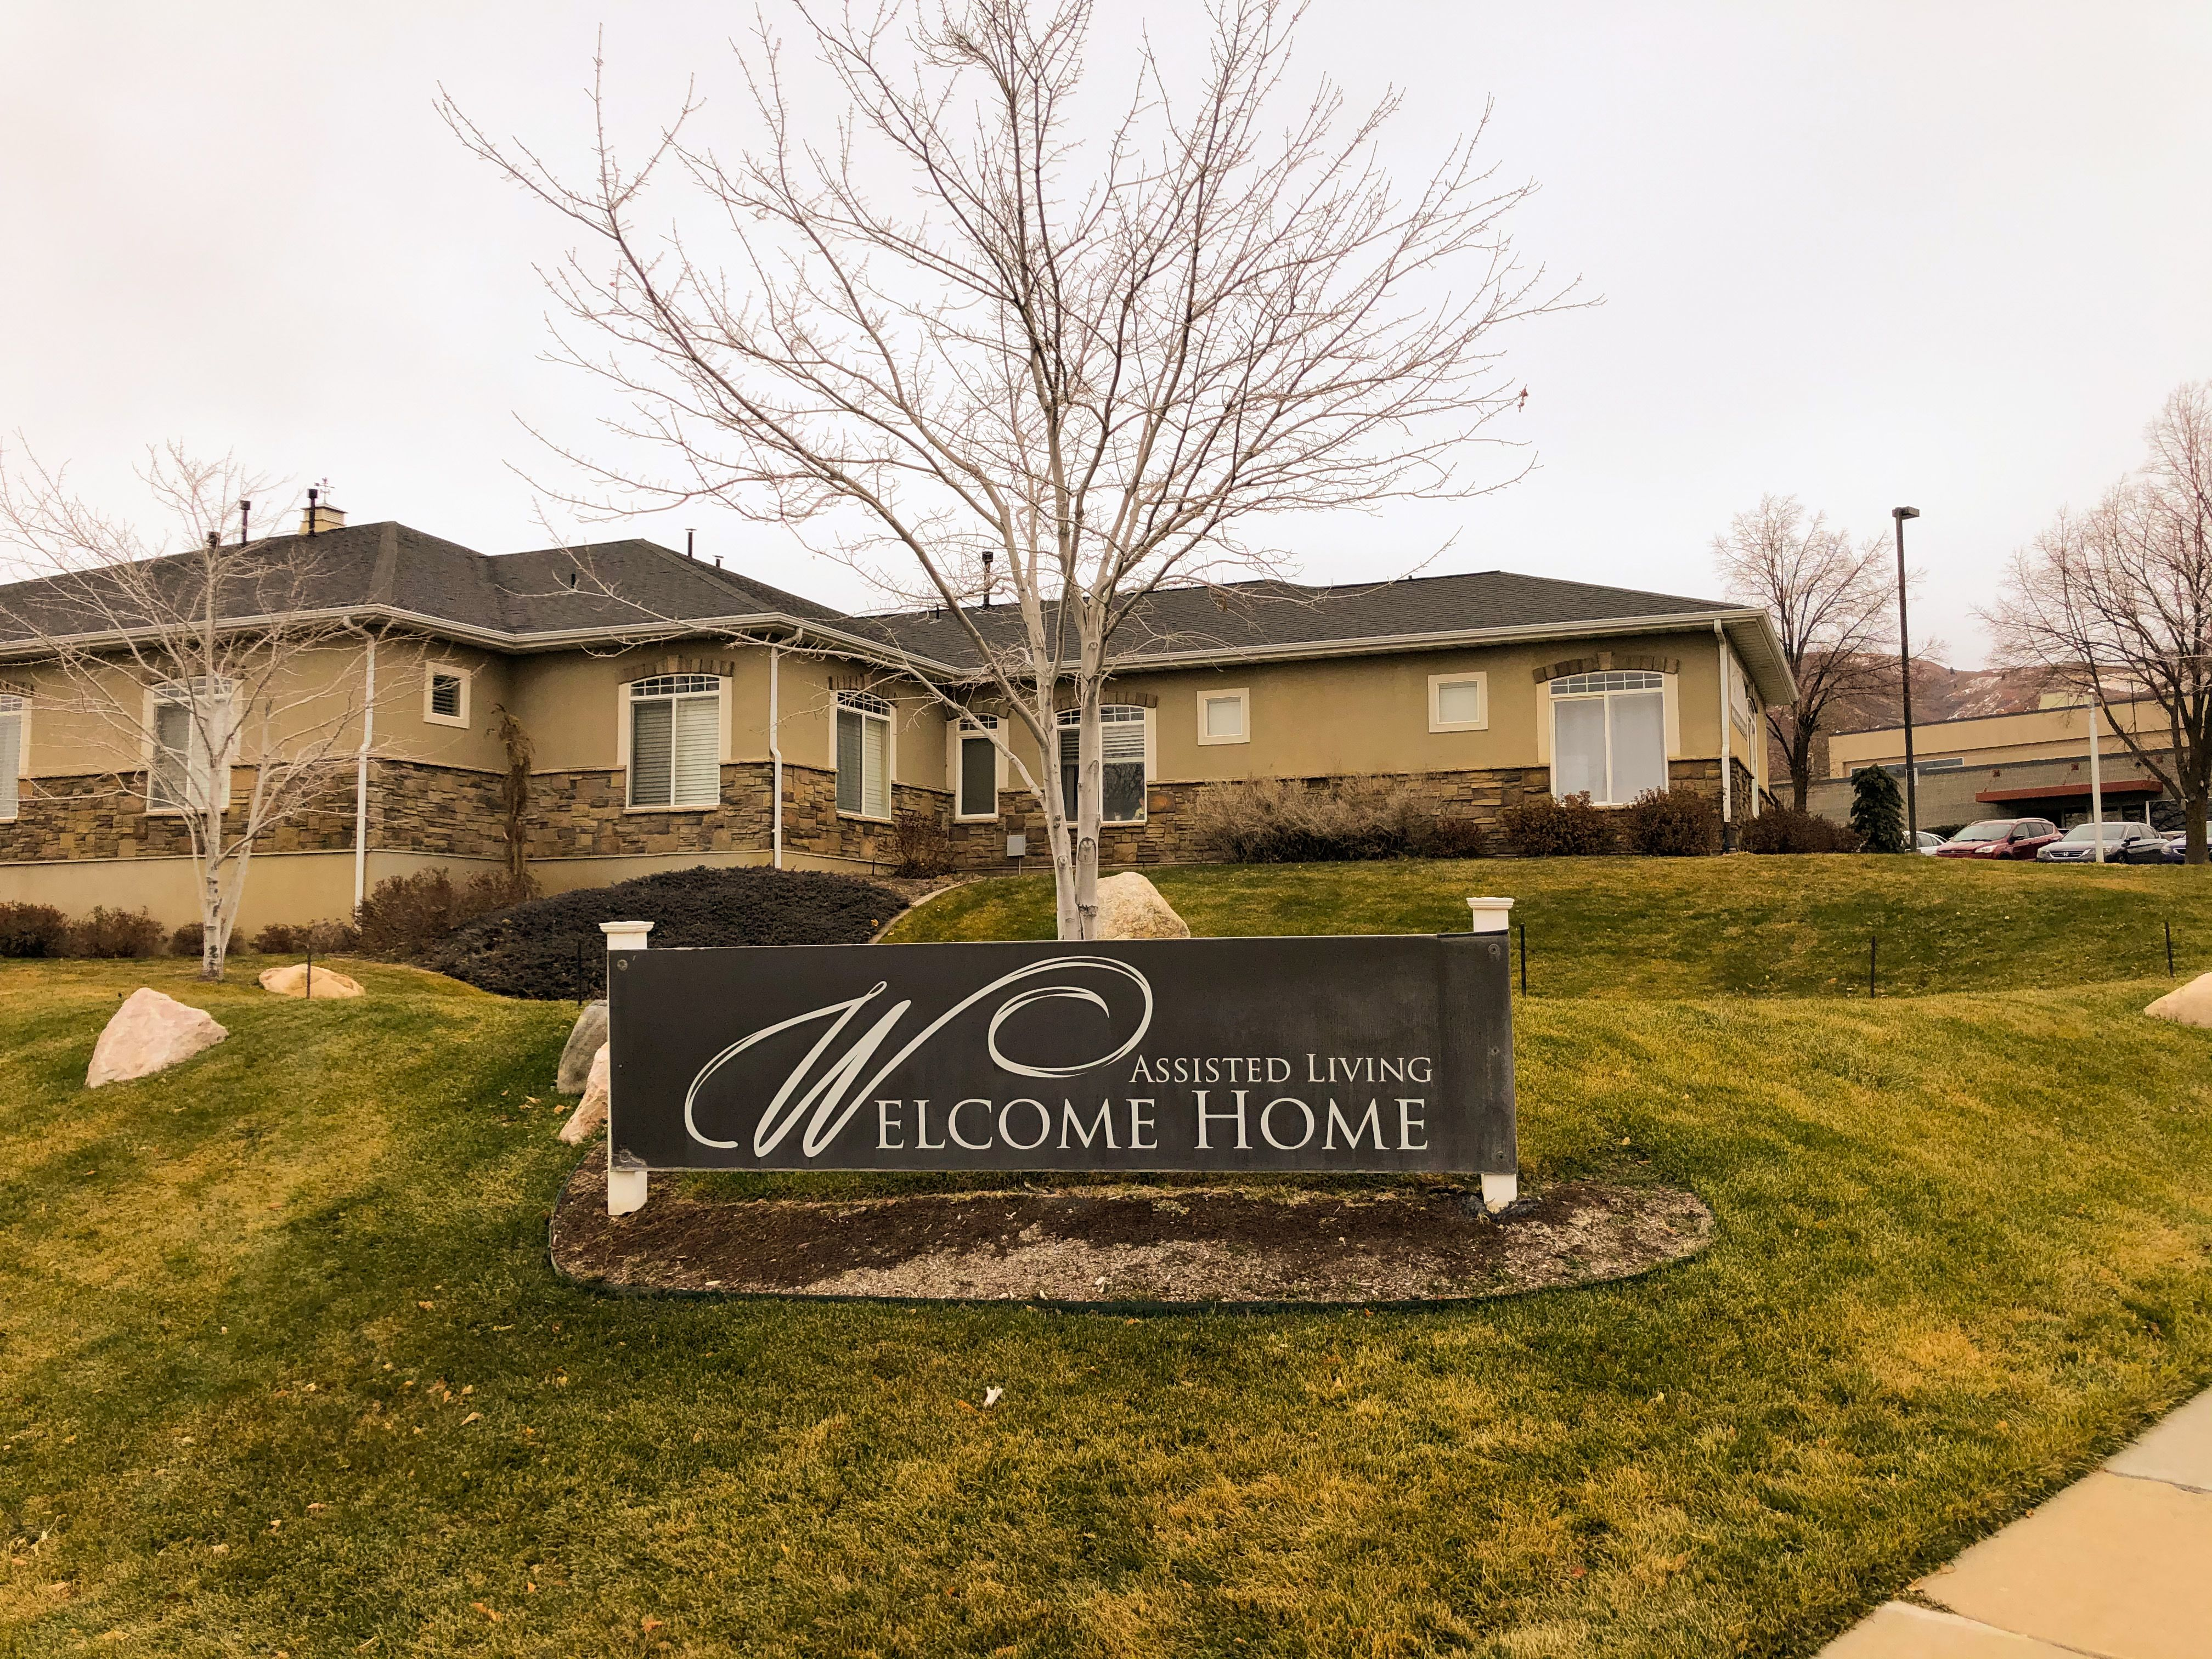 Welcome Home Assisted Living of Bountiful